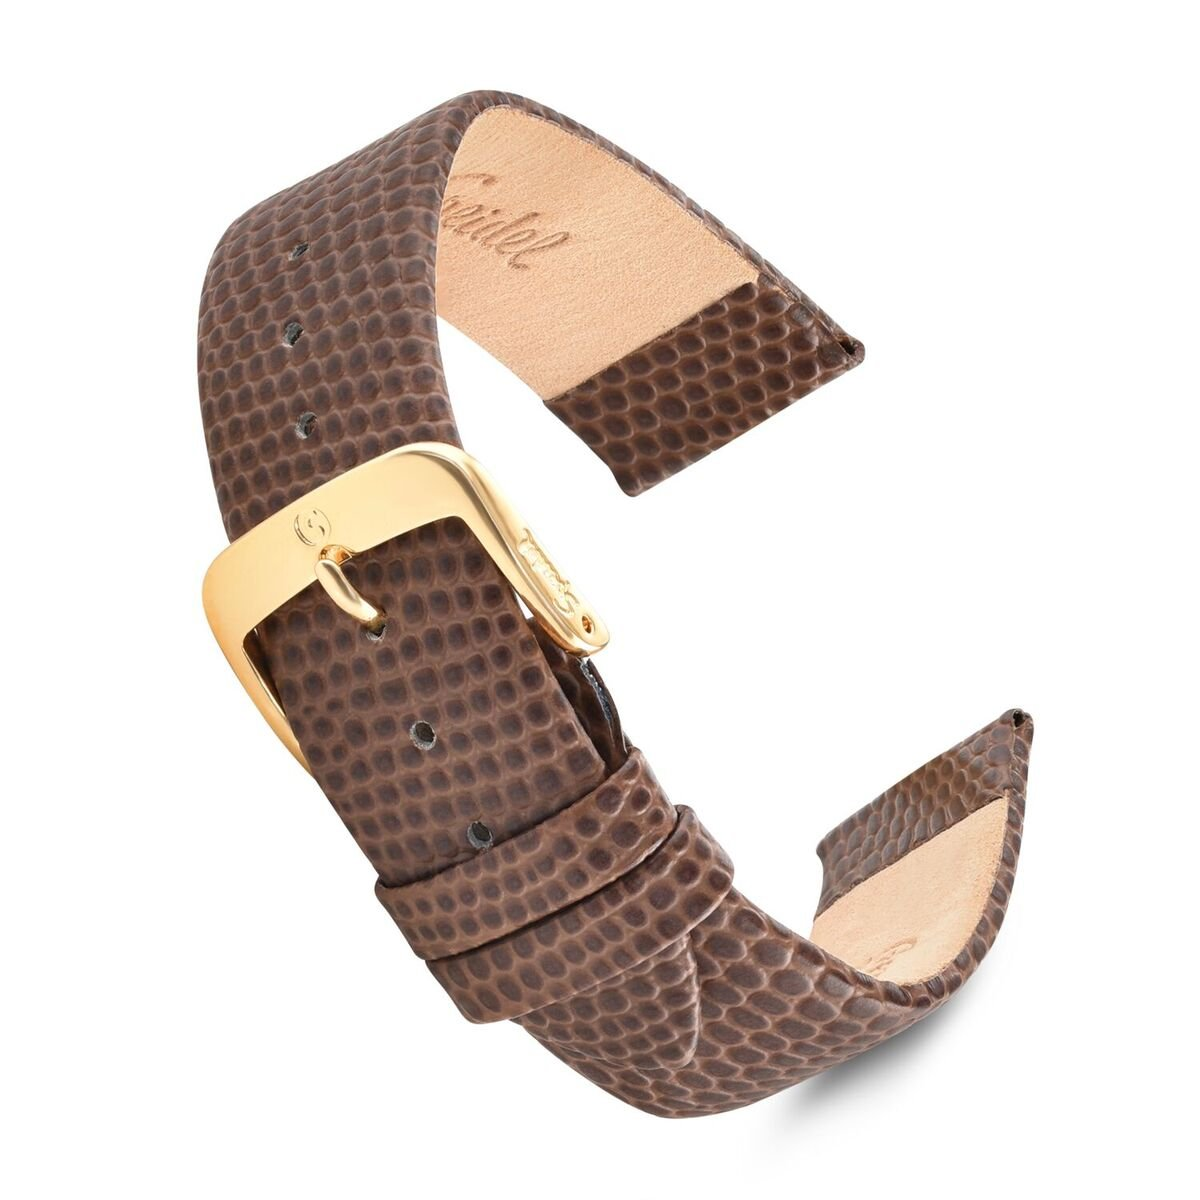 Speidel Genuine Leather Lizard Grain Watch Band 16mm Brown Replacement Strap, Stainless Steel Metal Buckle Clasp, Watchband Fits Most Watch Brands